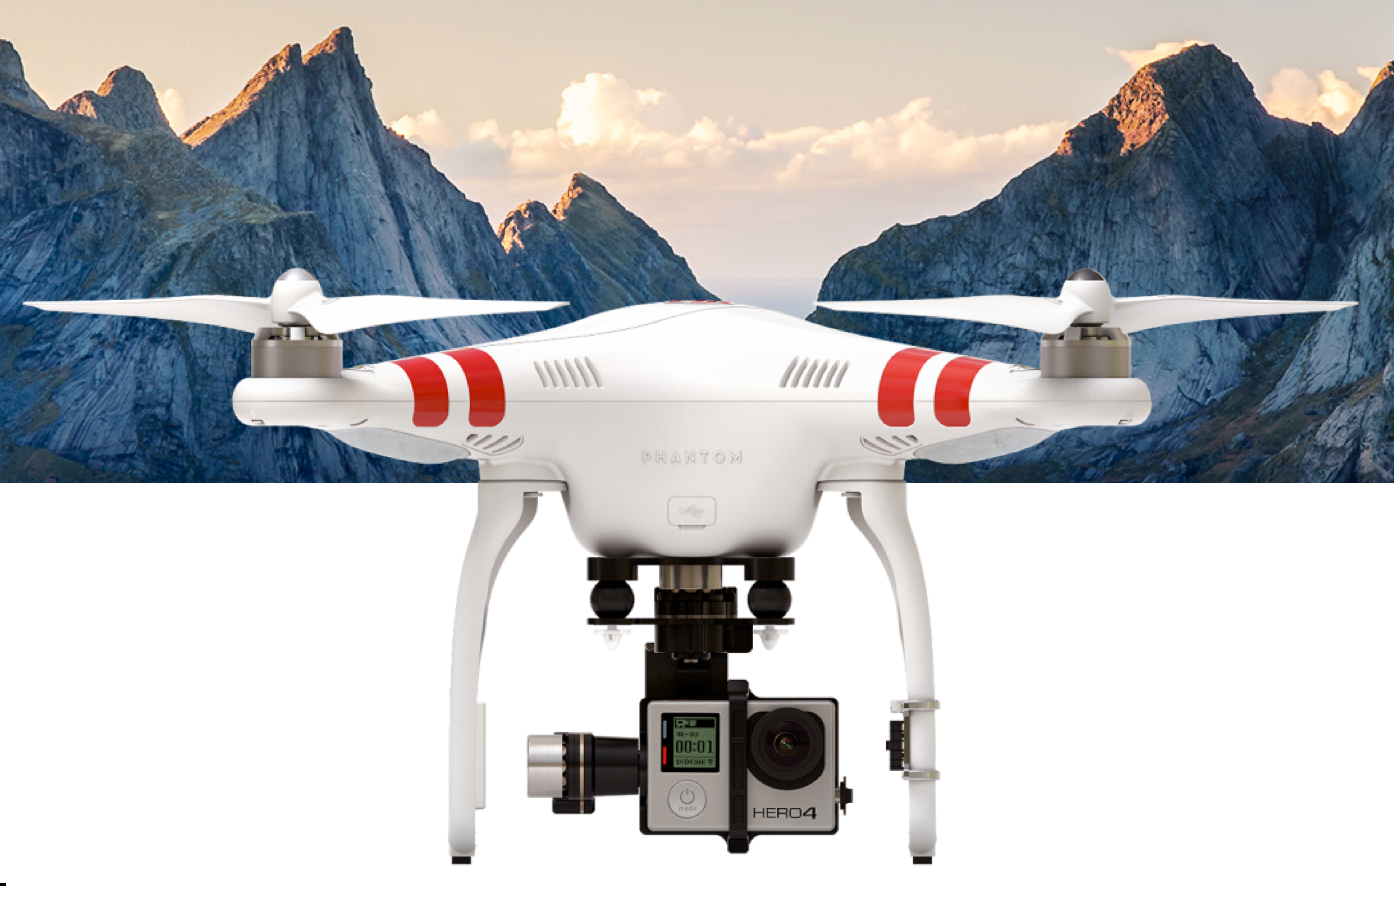 Zenmuse_H4-3D_-_Features___DJI